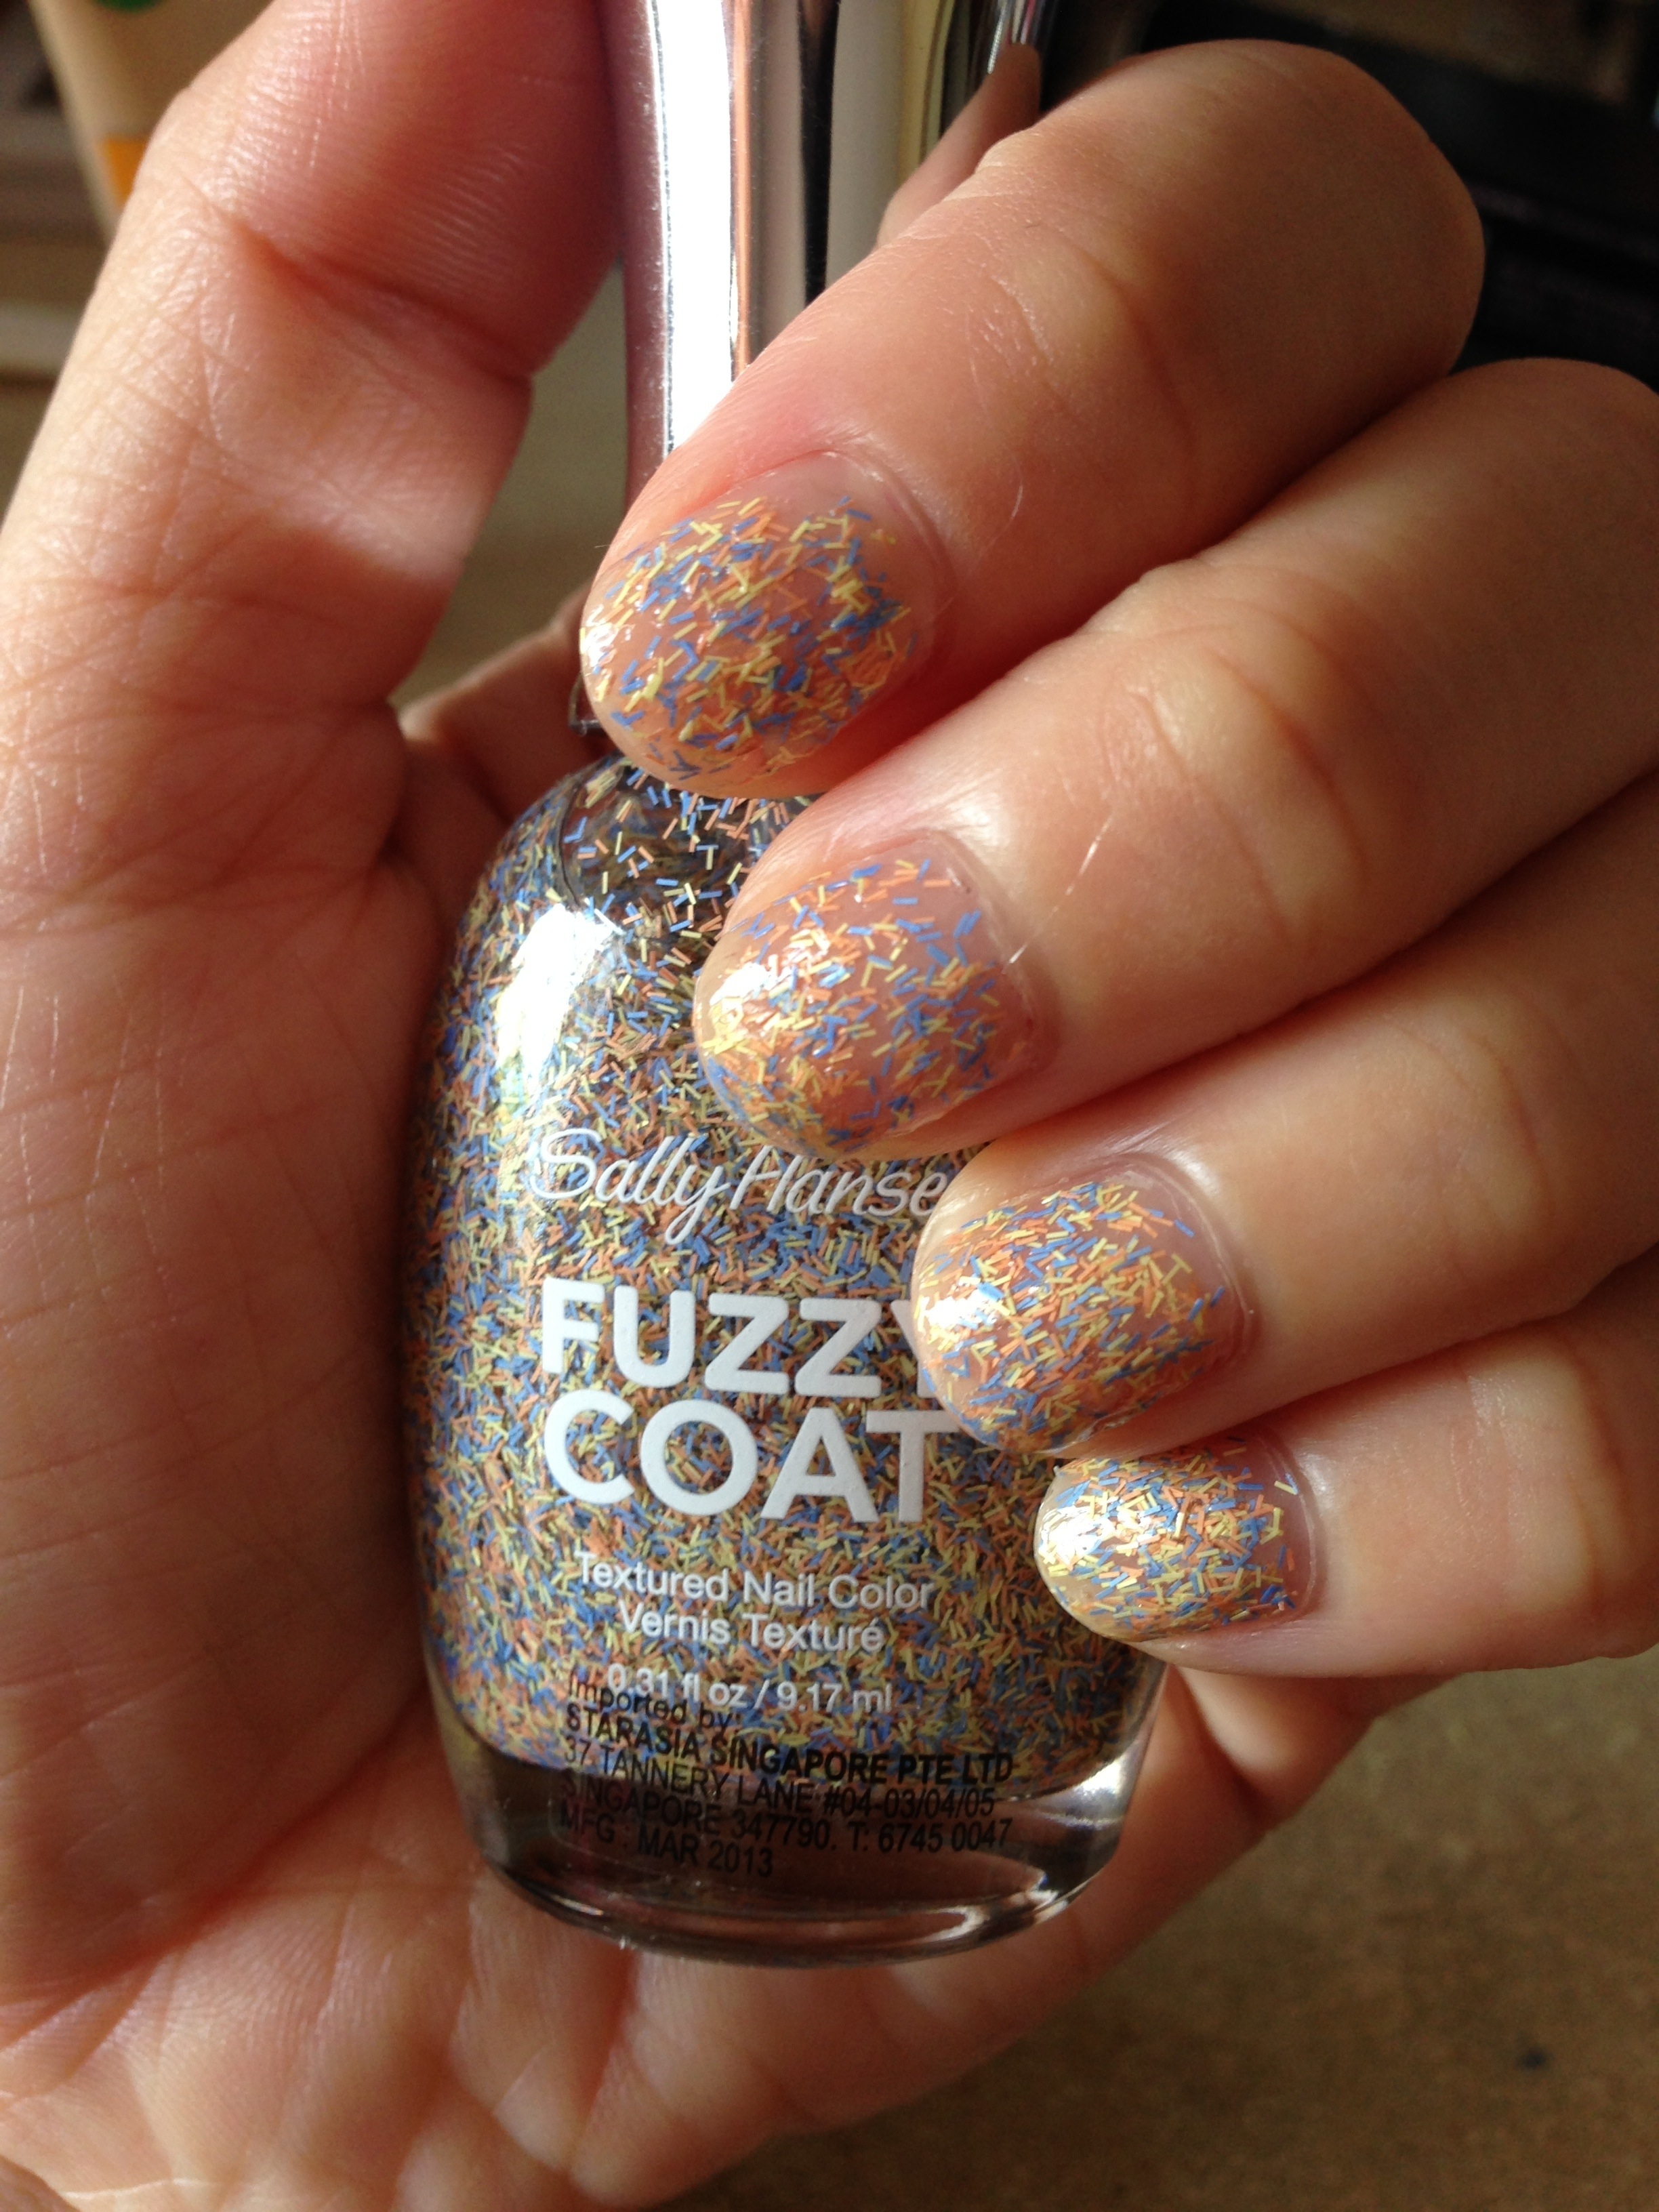 Sally Hansen Fuzzy Coat 200 All Yarned Up | Make Up My Mind please!